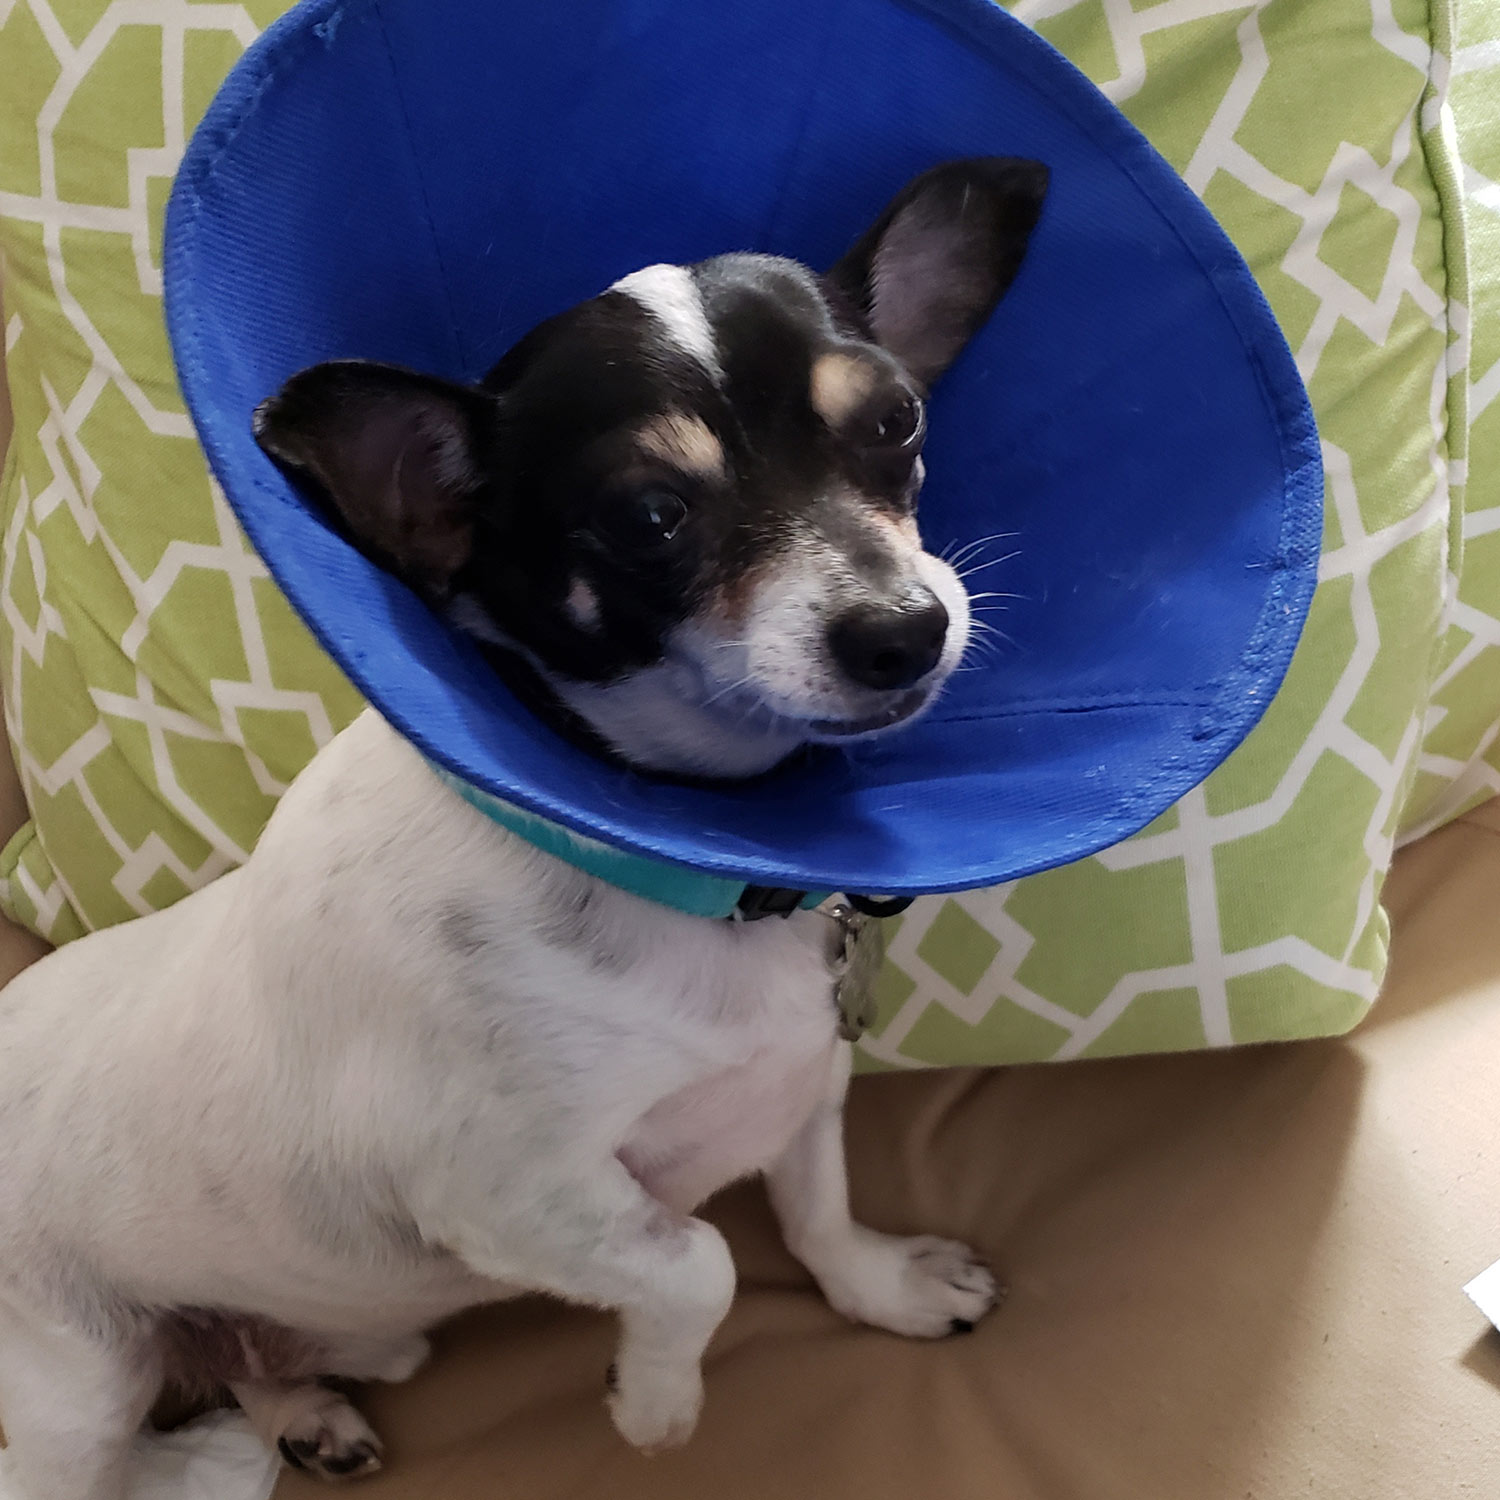 """Duncan, a Pet Pal alum, is back after having his teeth professionally cleaned. He's wearing the """"Cone of Shame"""" so he won't scratch his mouth. Pro cleanings are important to keep the mouth and teeth healthy."""